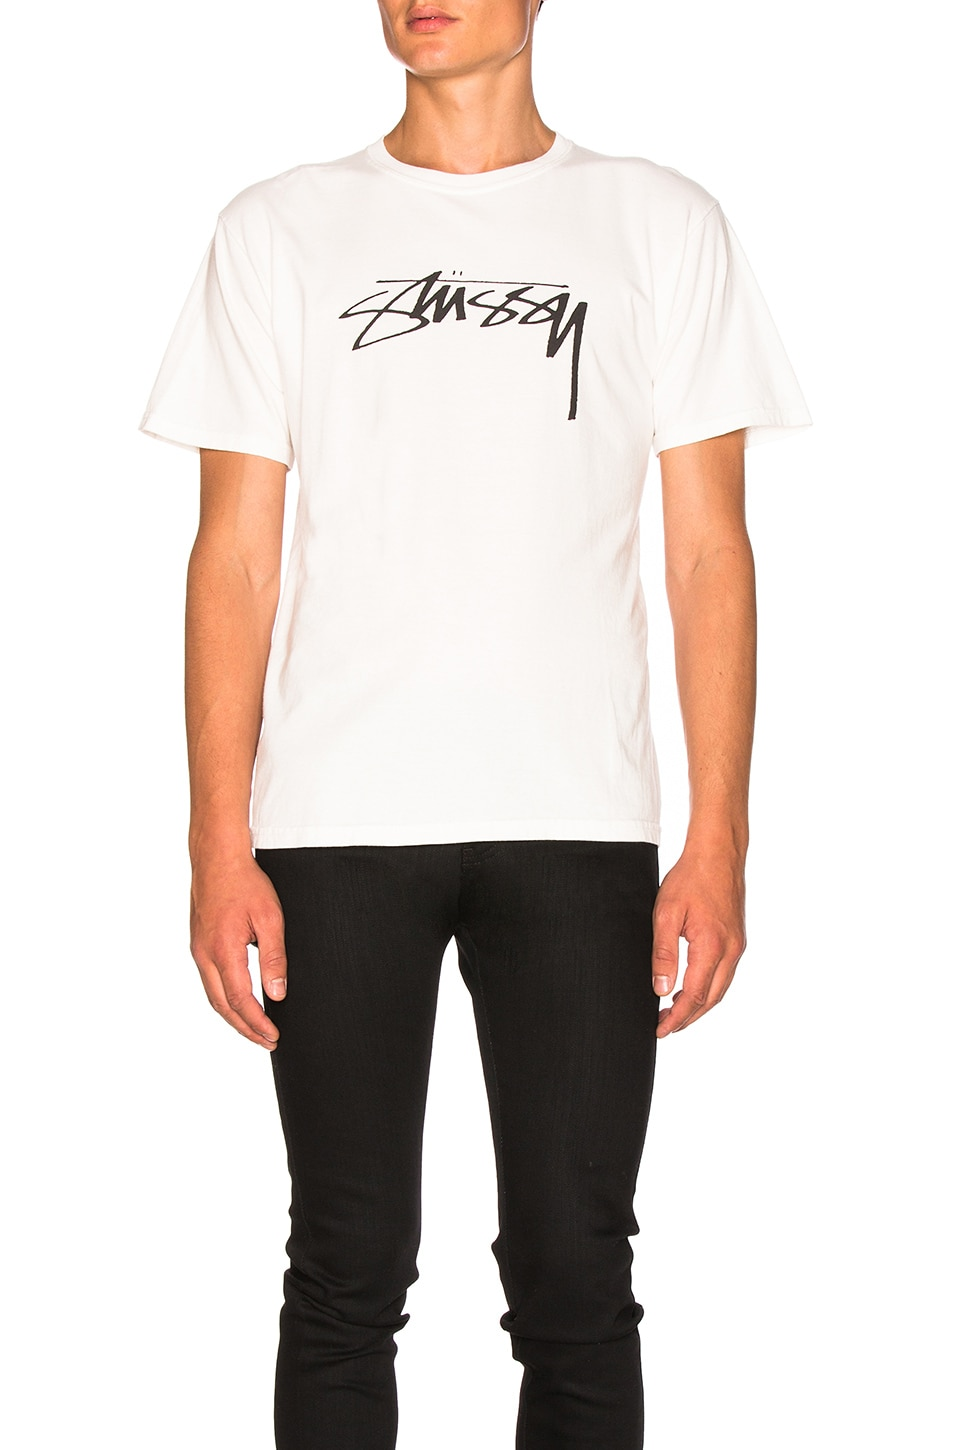 Smooth Stock Tee by Stussy